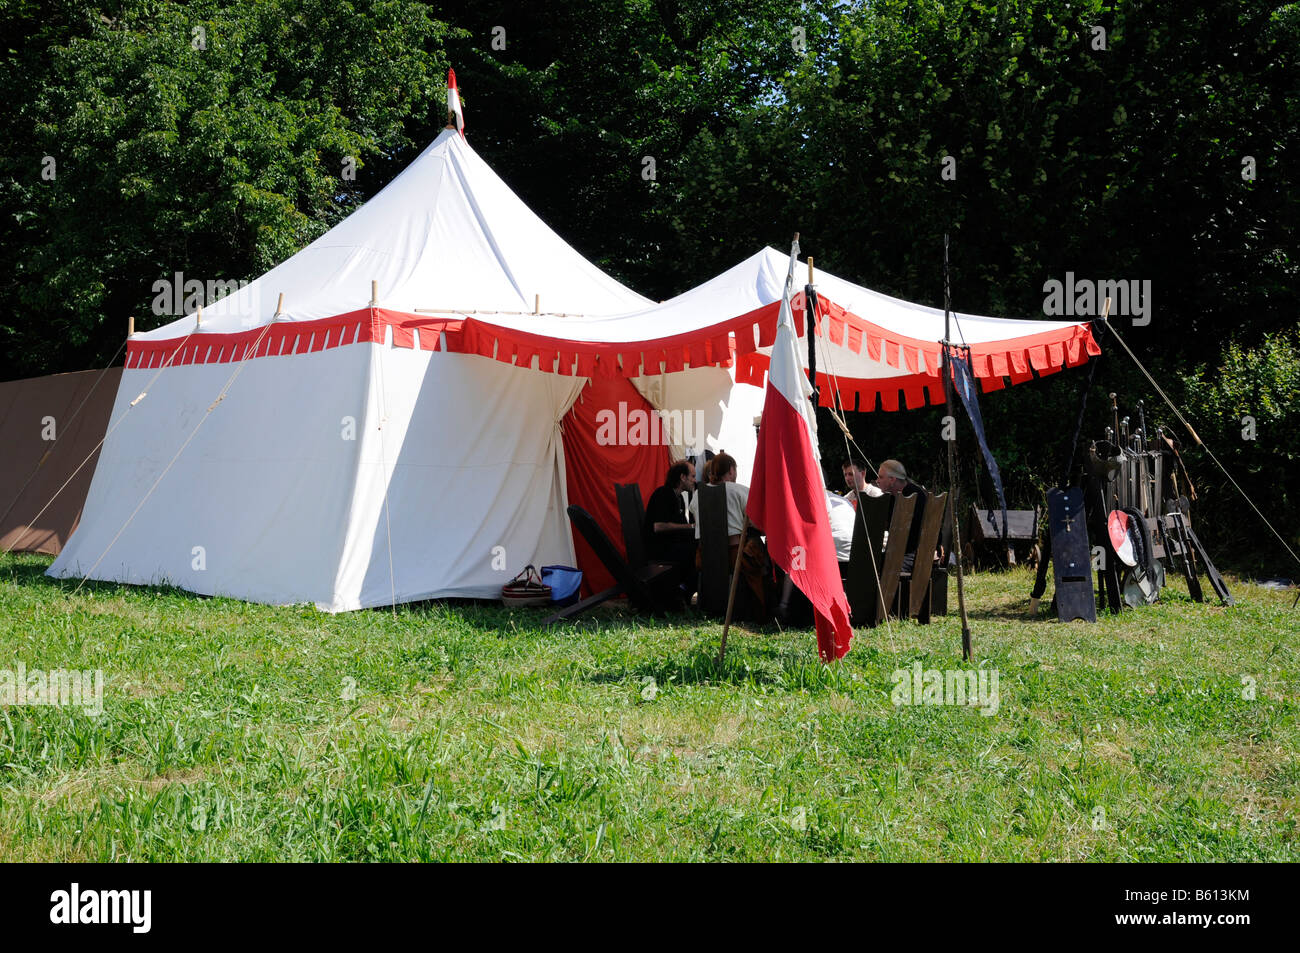 Knightu0027s banquet tents in a military c& arms weaponry market Waescherburg Castle Waeschenbeuren Baden-Wuerttemberg & Knightu0027s banquet tents in a military camp arms weaponry market ...